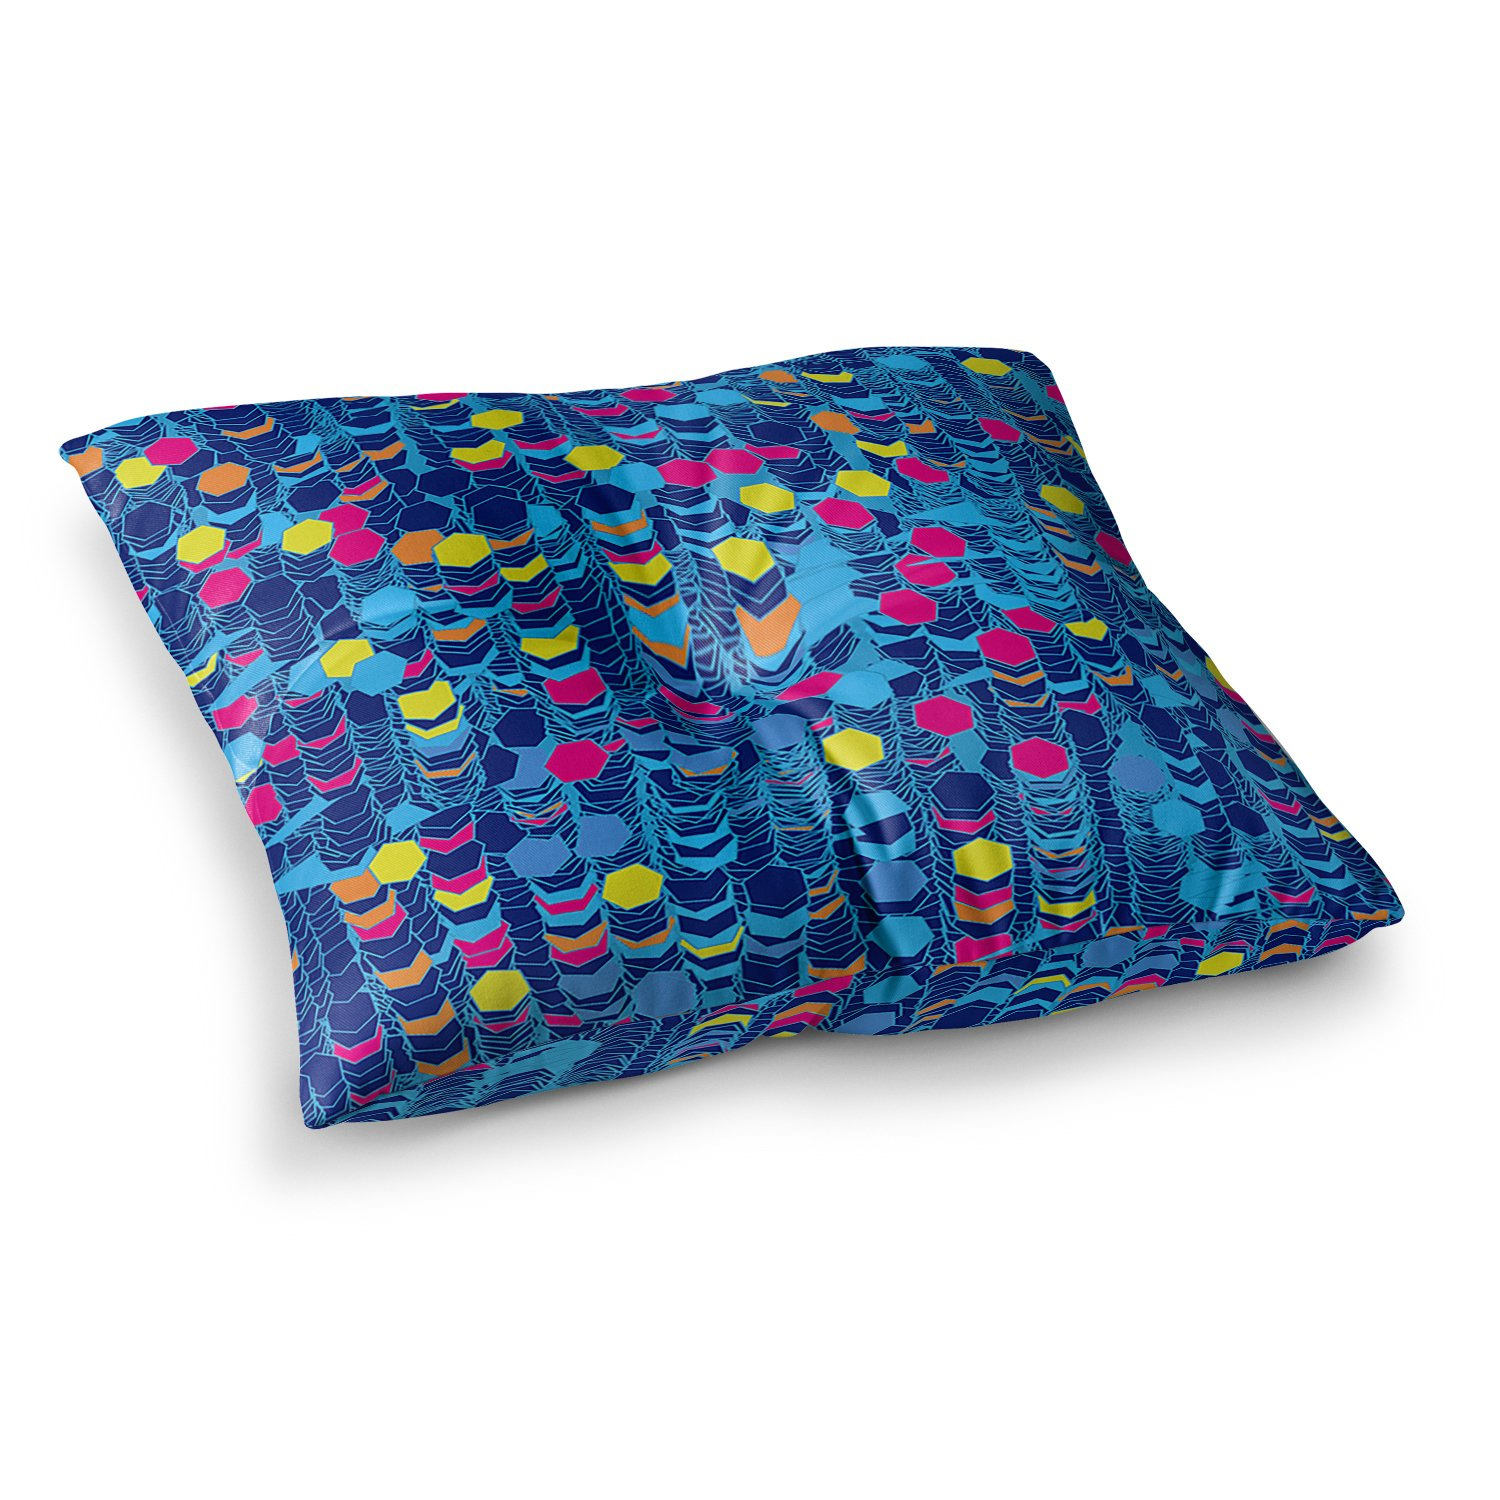 23 x 23 Square Floor Pillow Kess InHouse Frederic Levy-Hadida Color Hiving Blue Navy